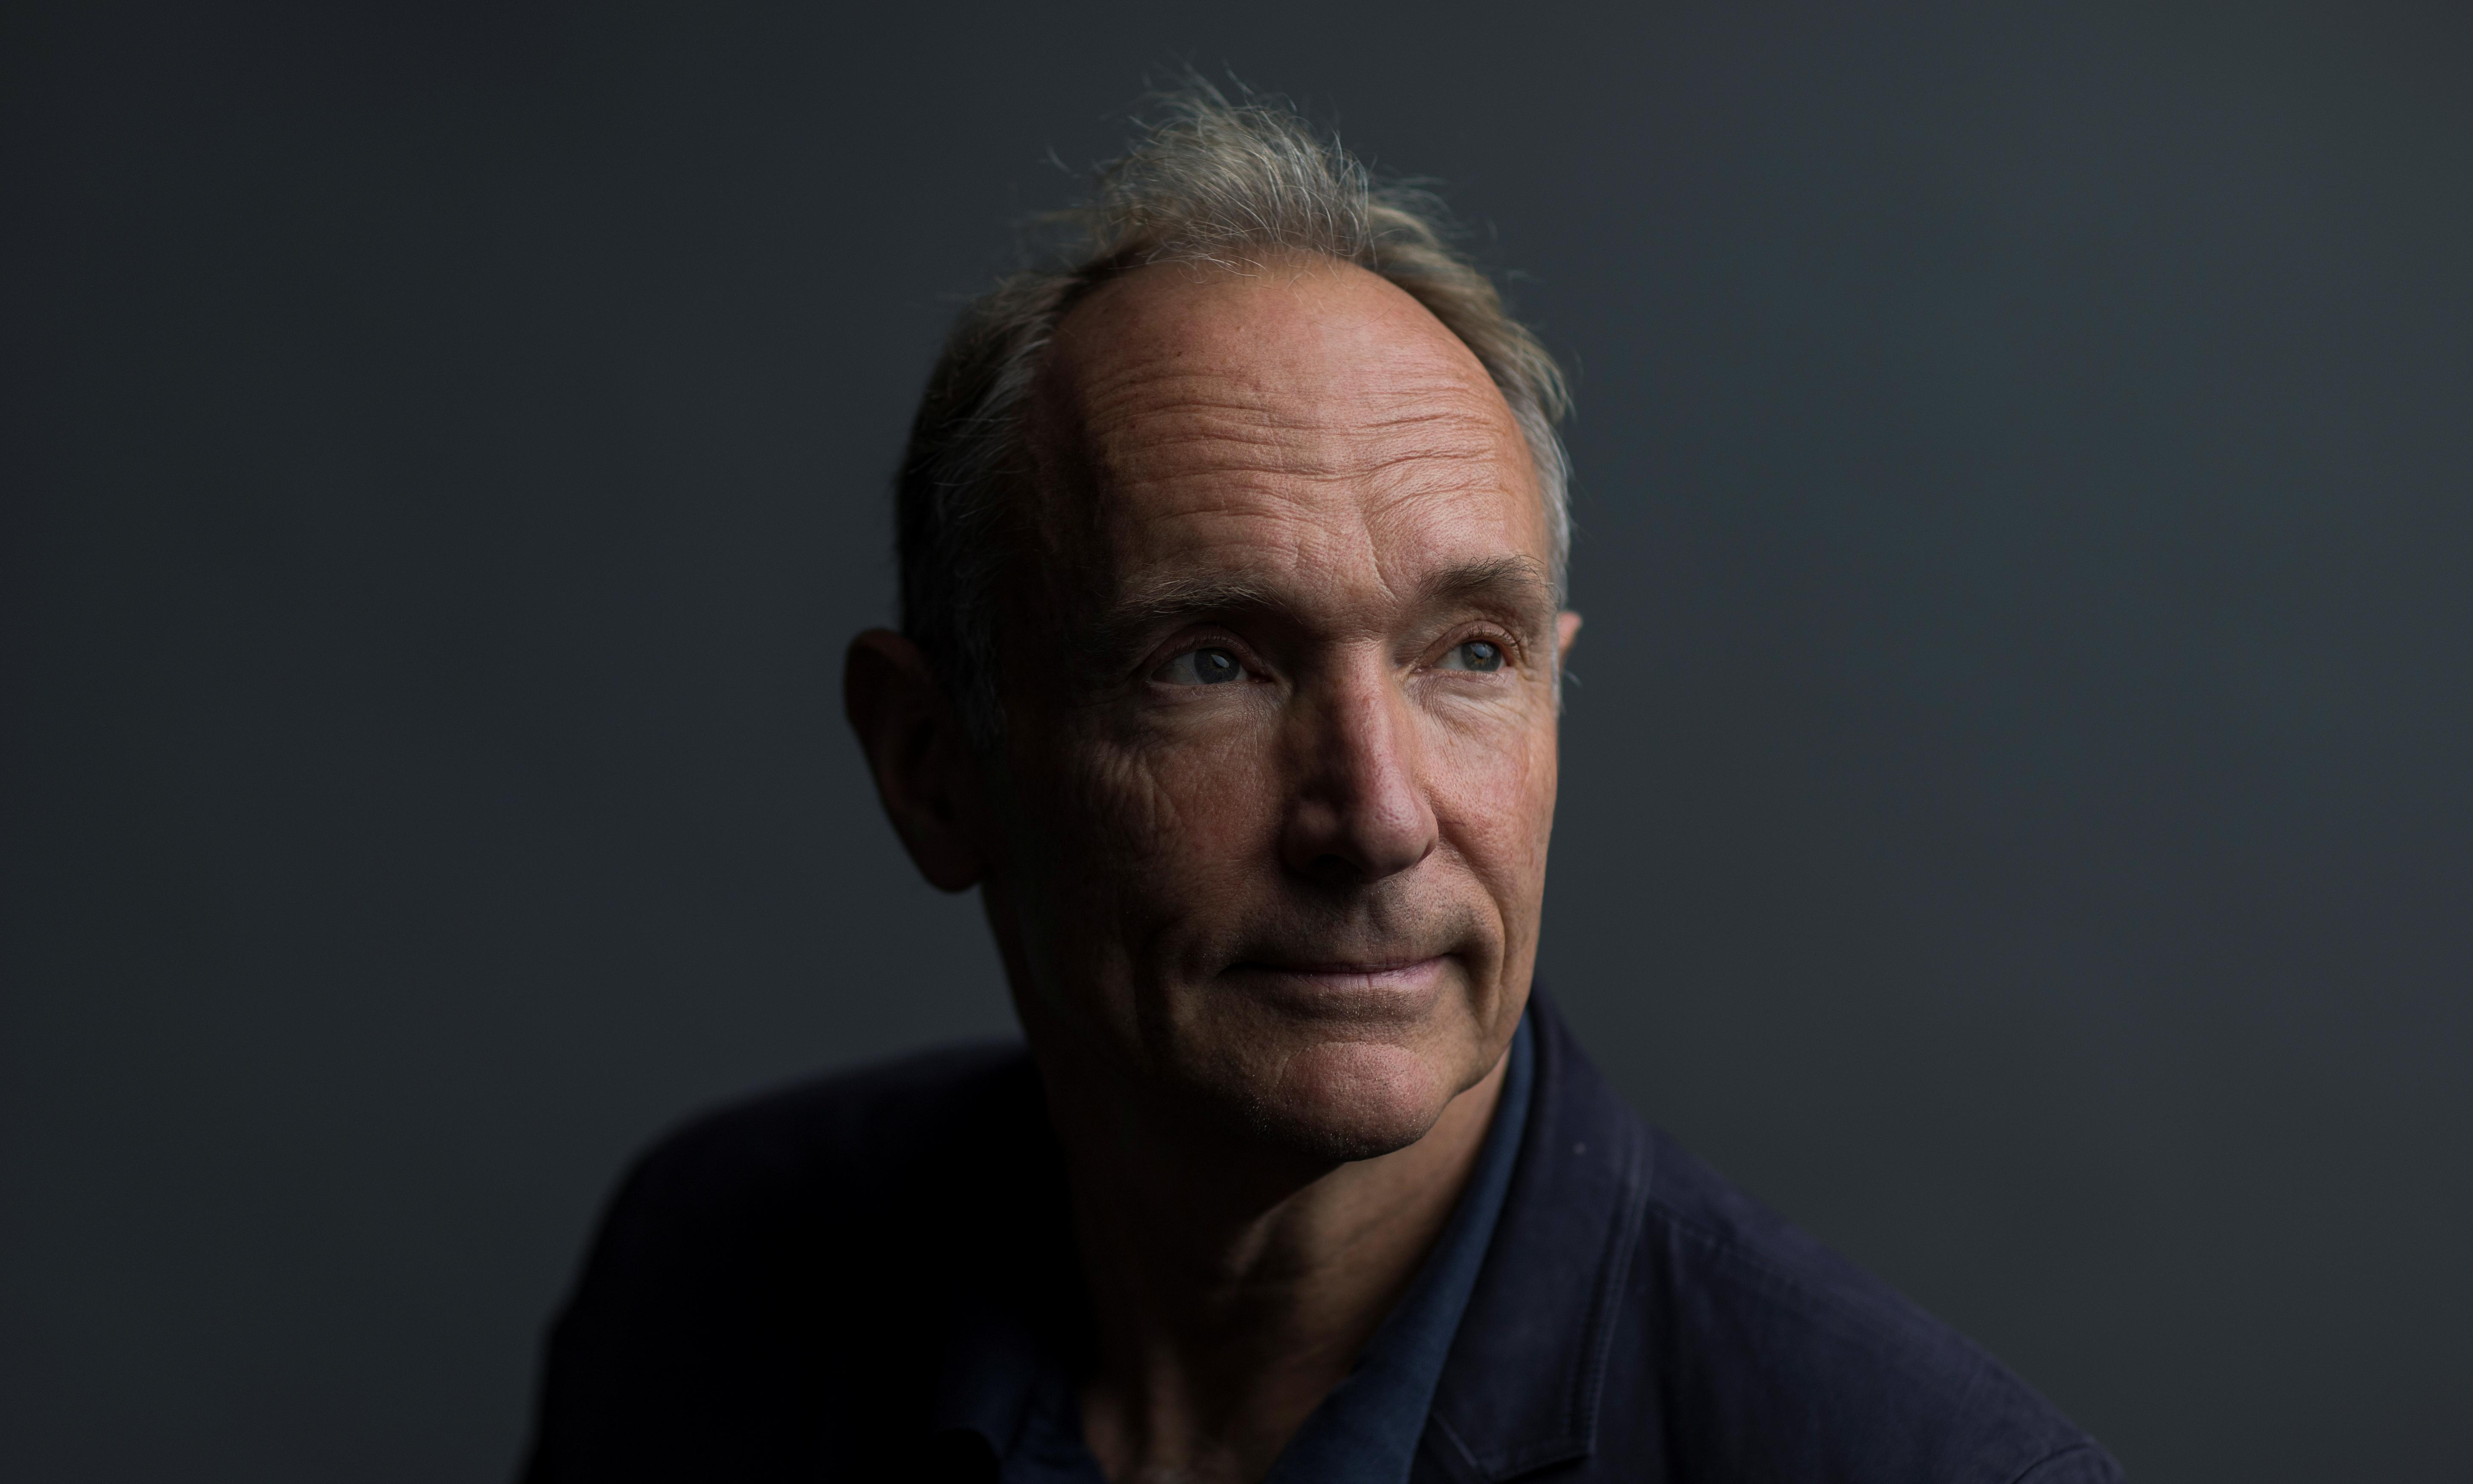 Tim Berners-Lee on 30 years of the world wide web: 'We can get the web we want'